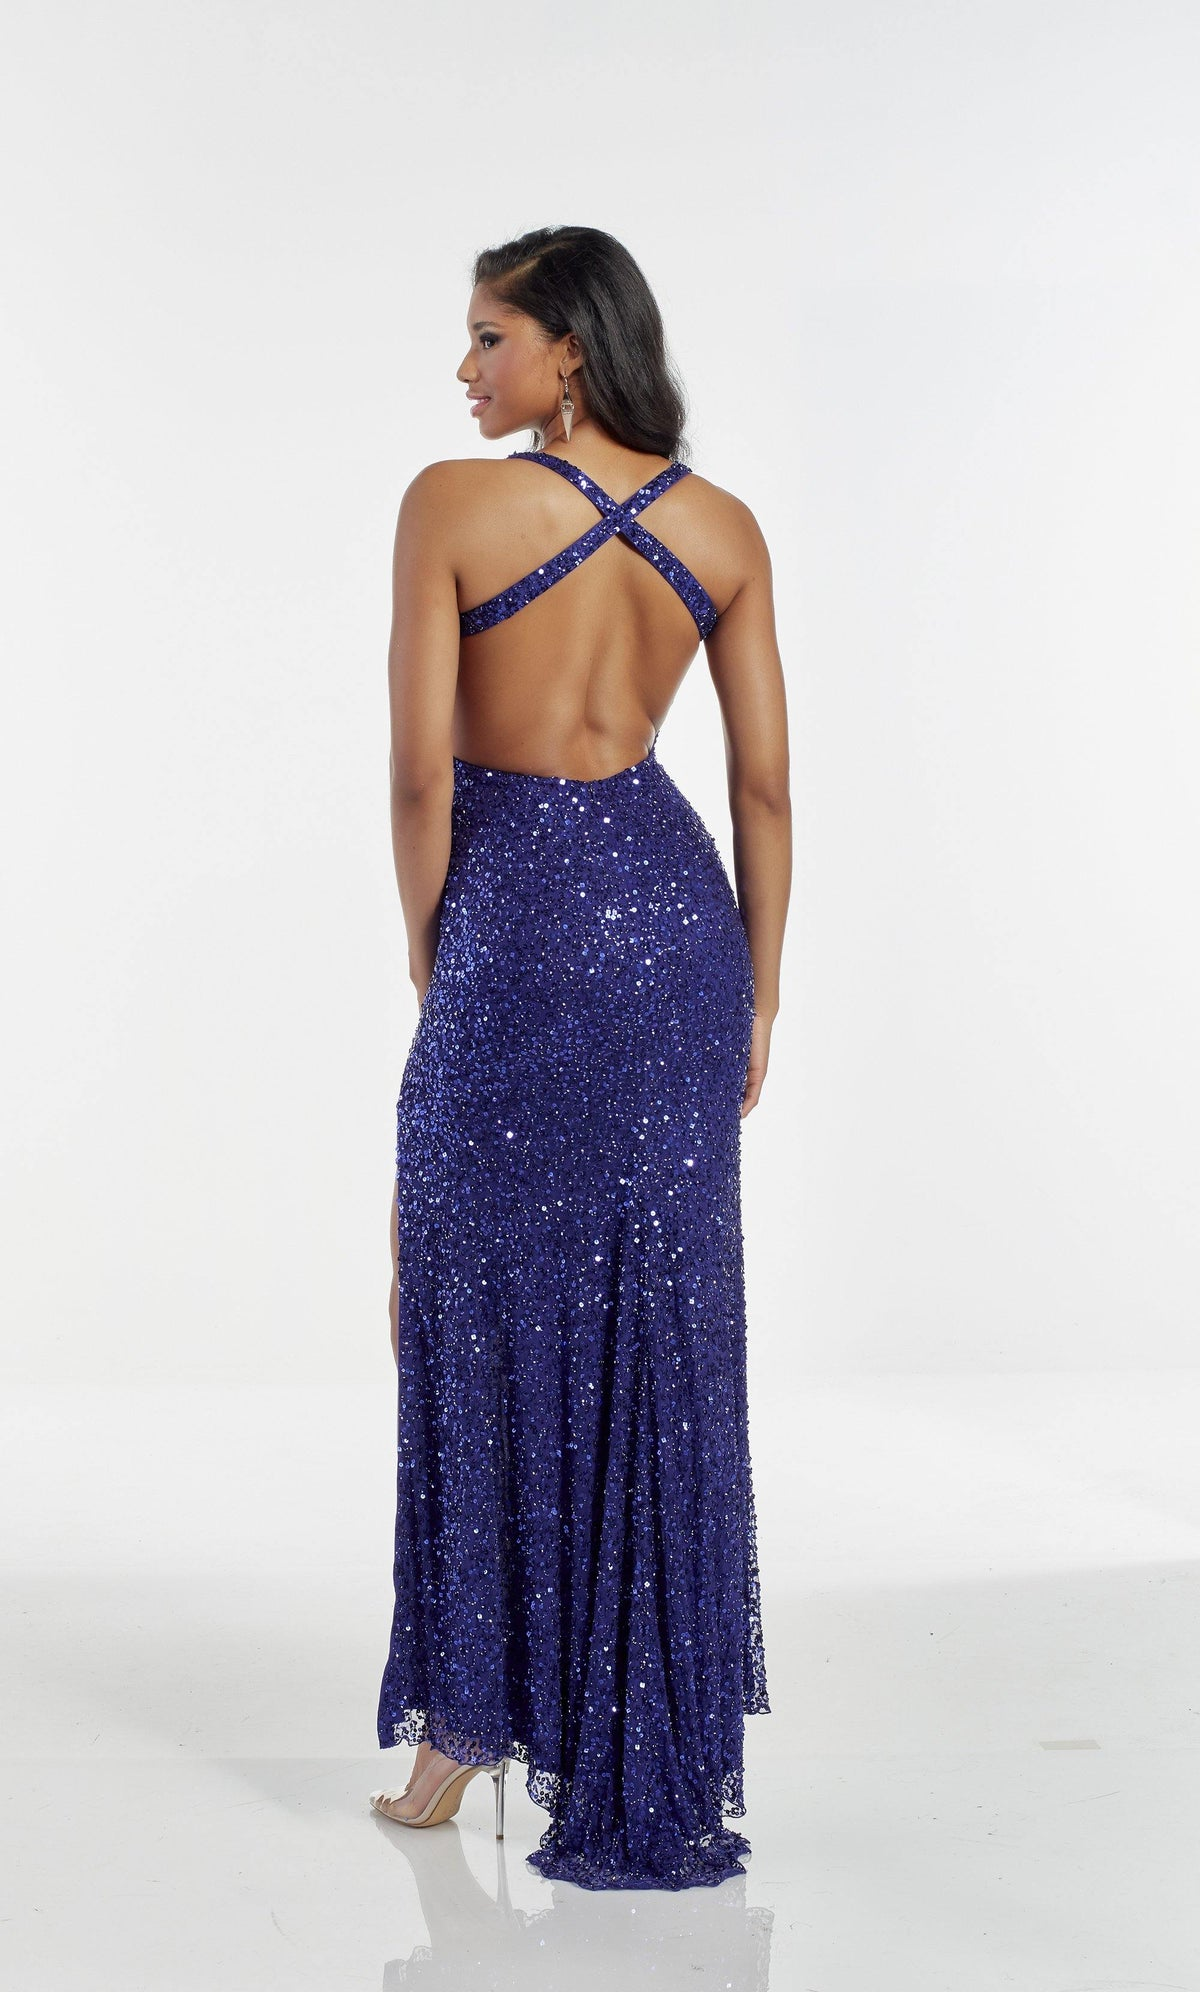 Cobalt Blue hand beaded prom dress with a strappy back and train